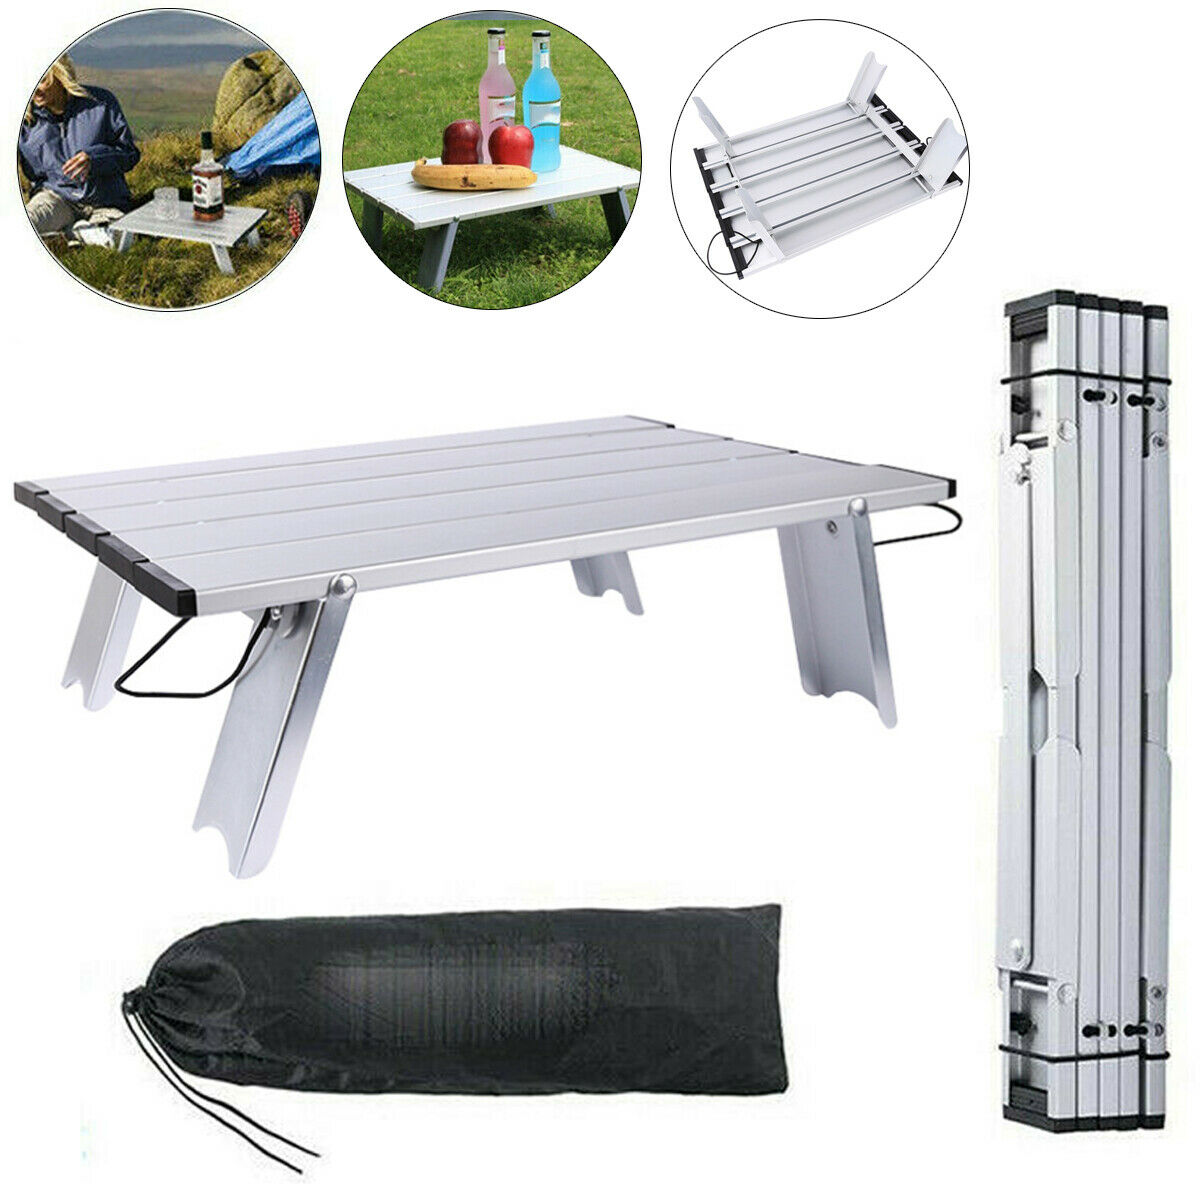 BETTY Tables Outdoor Camping Stainless Steel Foldable Three-Tier Rack Picnic Fishing Grill Multi-Layer Shelf Self-Driving Tour